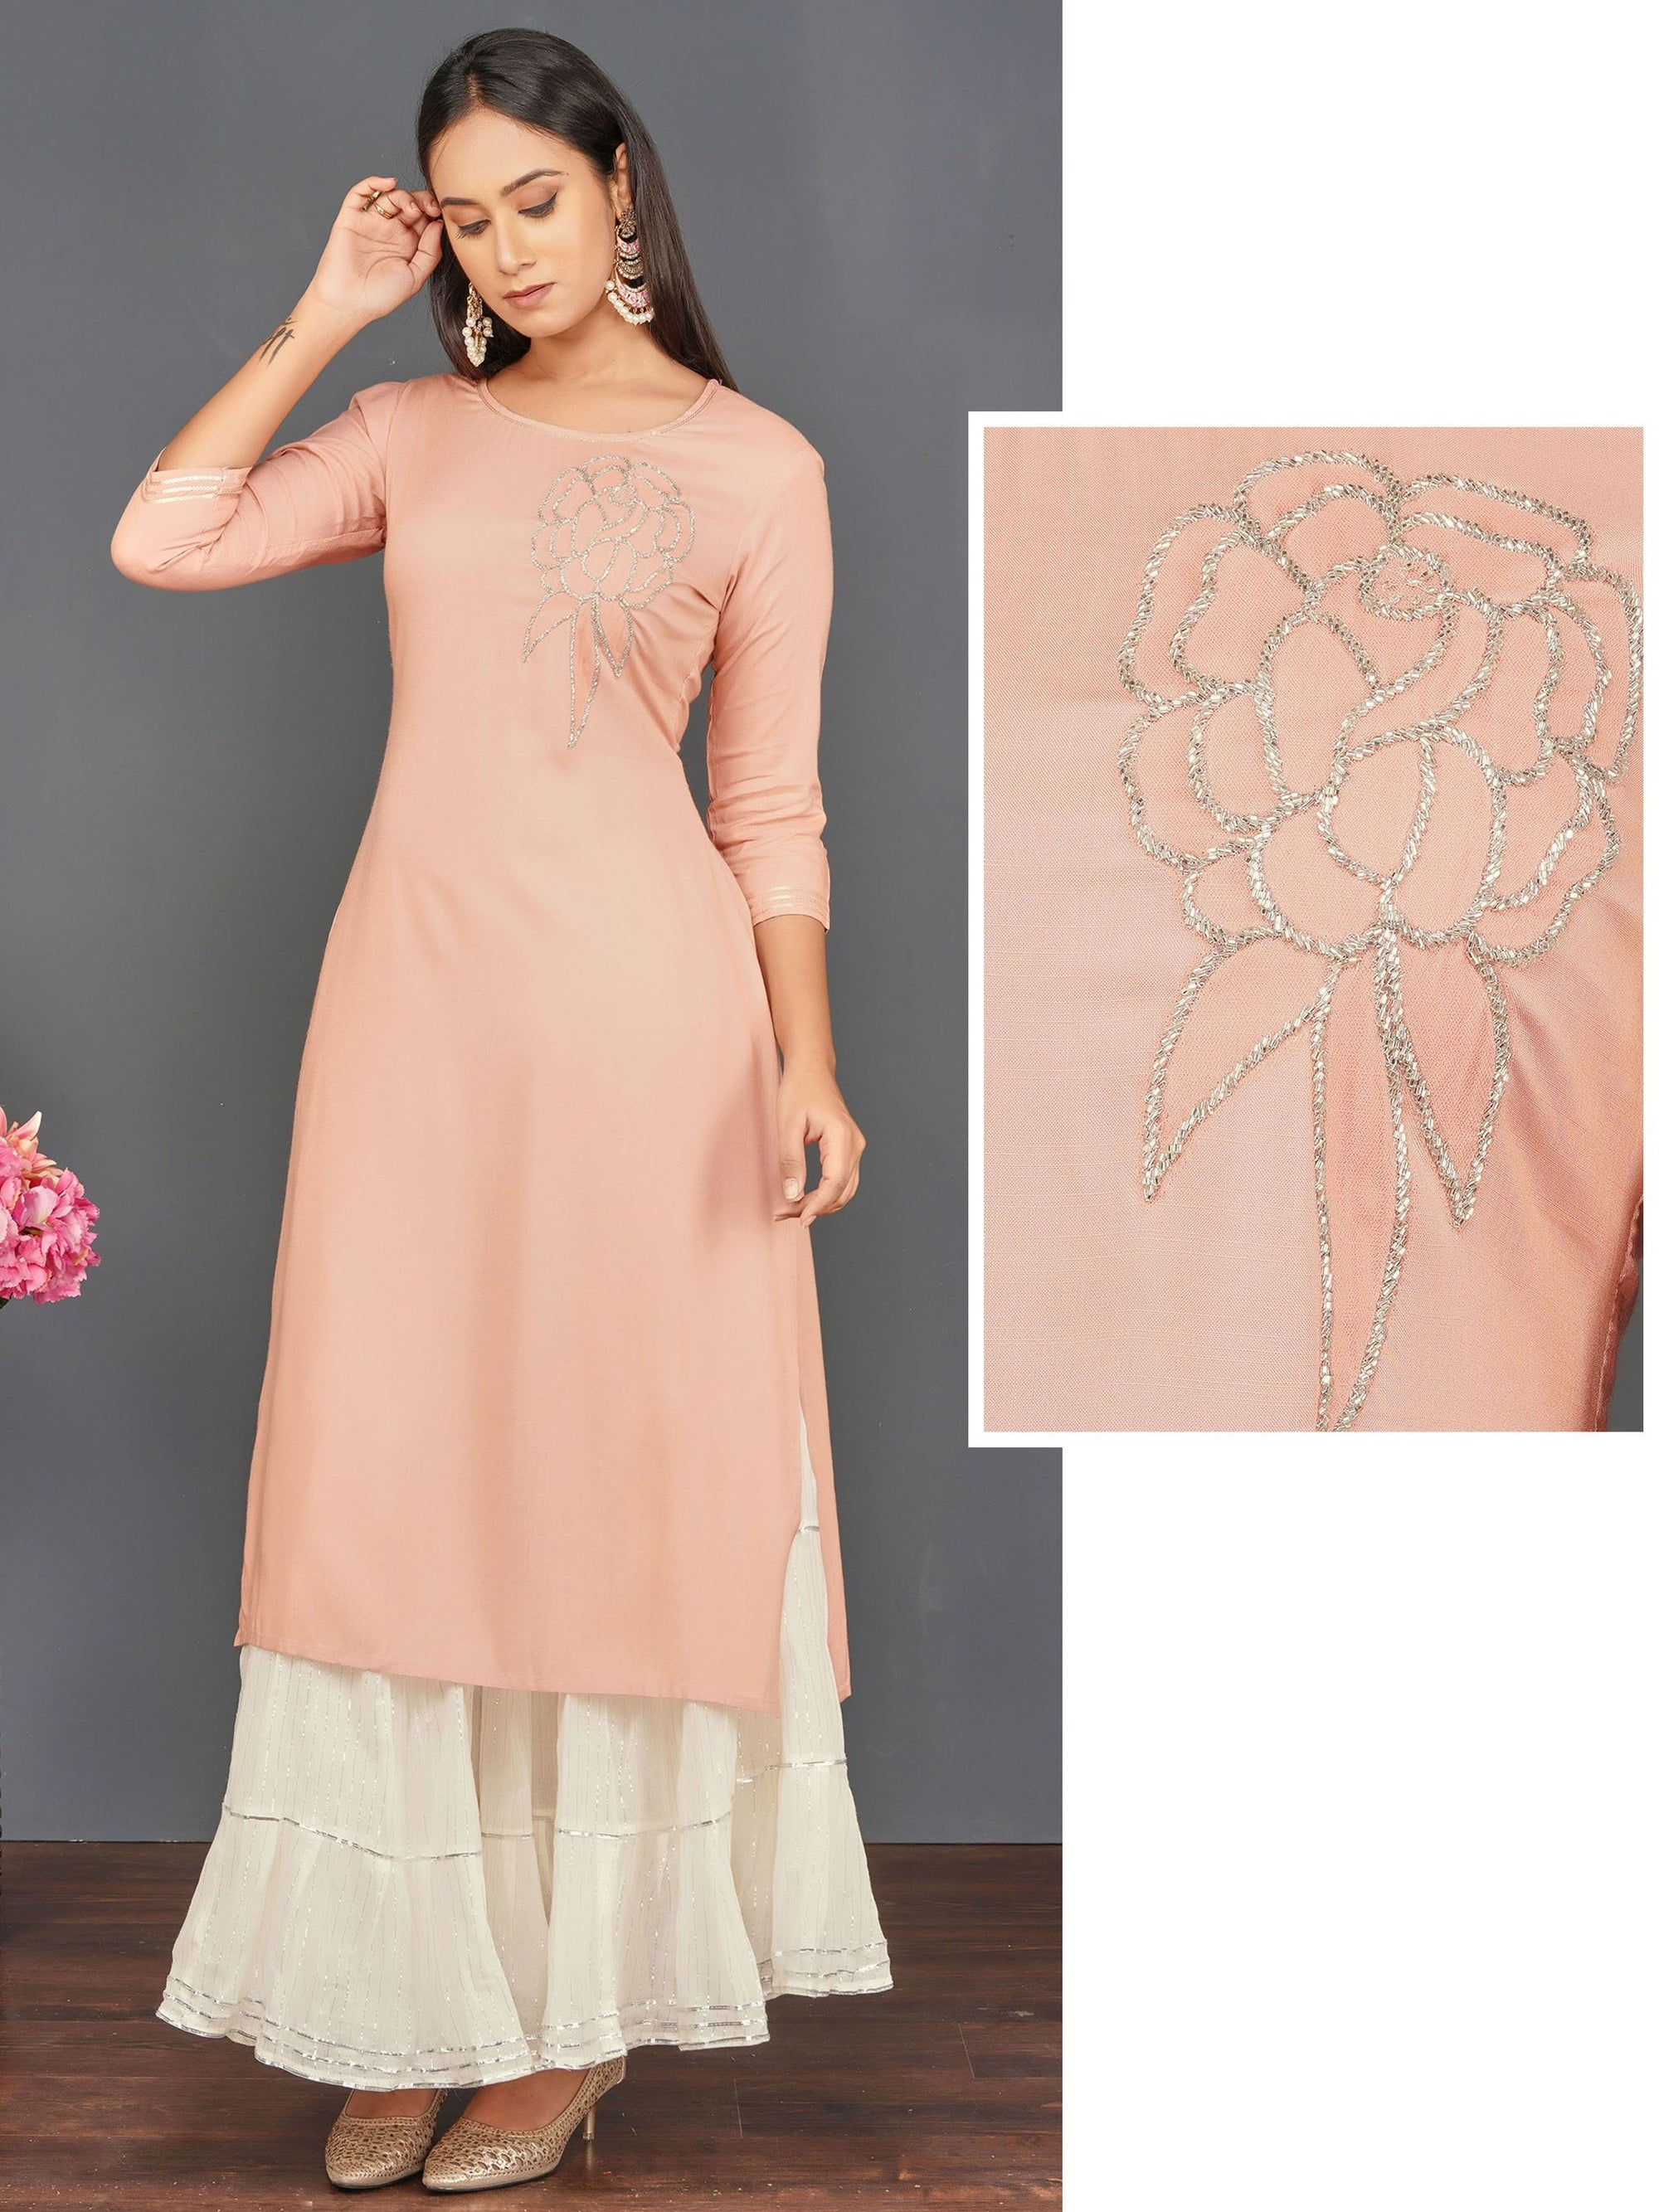 Cutdana Embellished Cotton Kurti – Peach